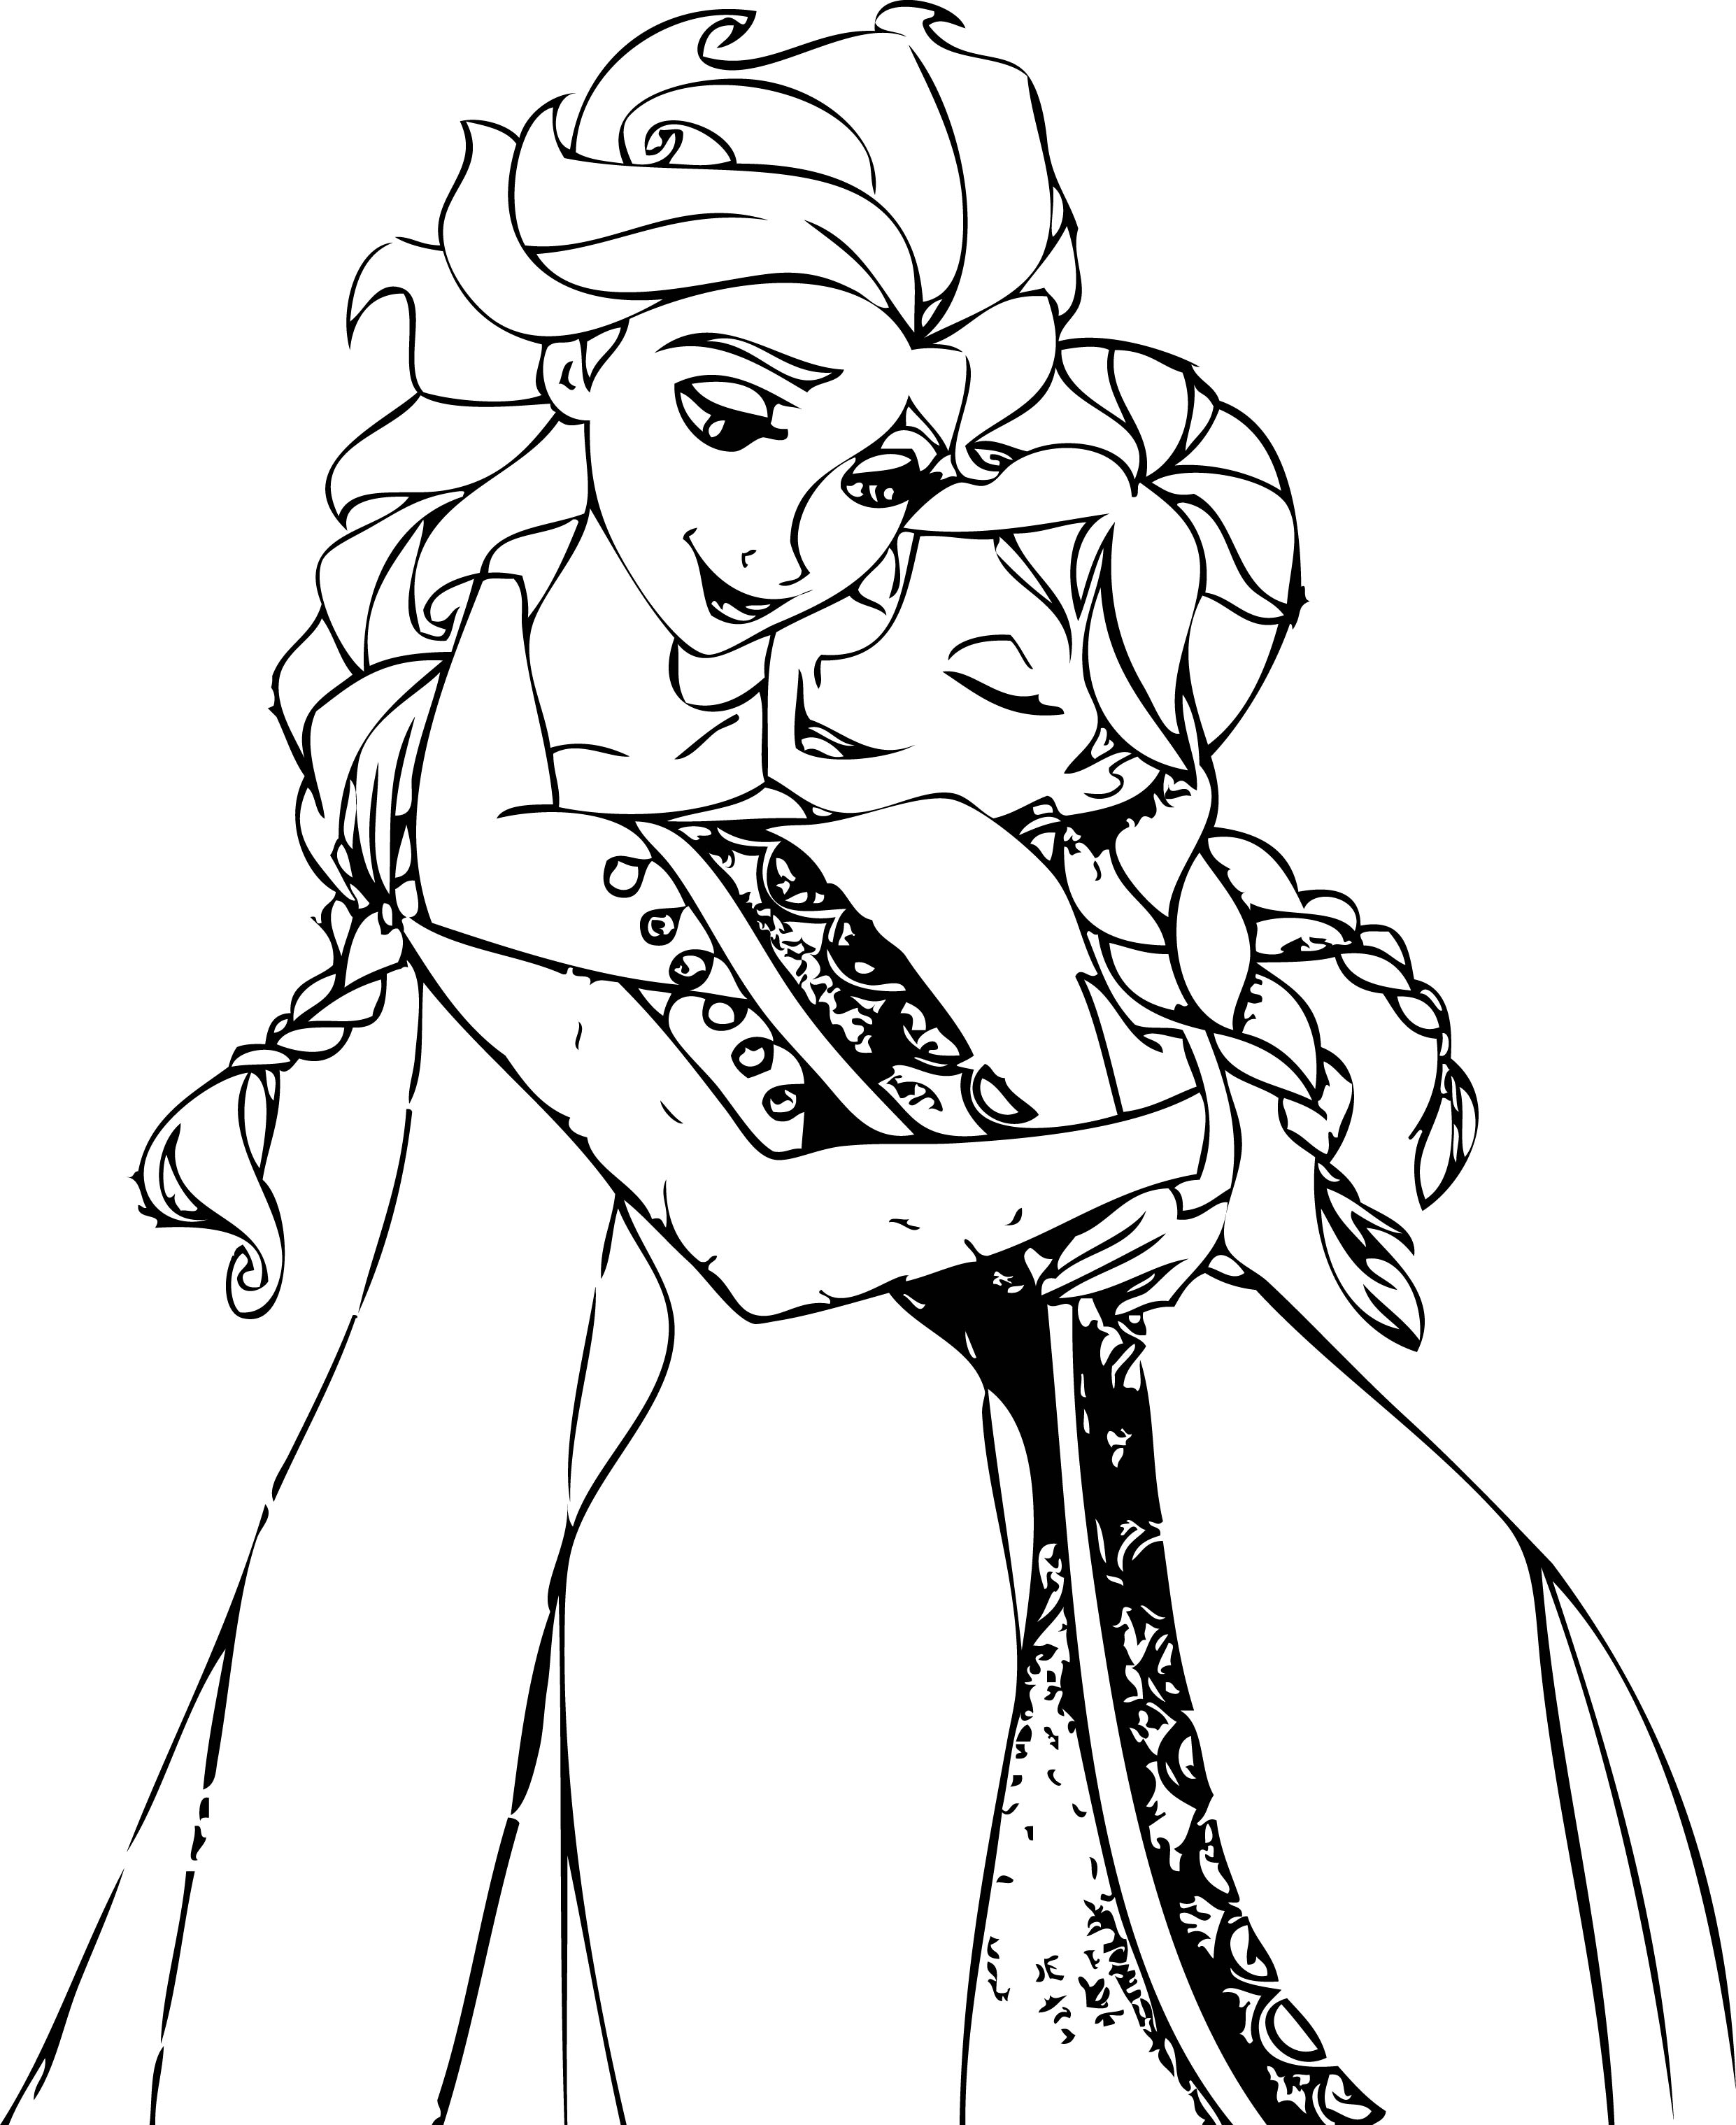 coloring printable elsa and anna elsa and anna coloring pages to download and print for free coloring elsa anna and printable